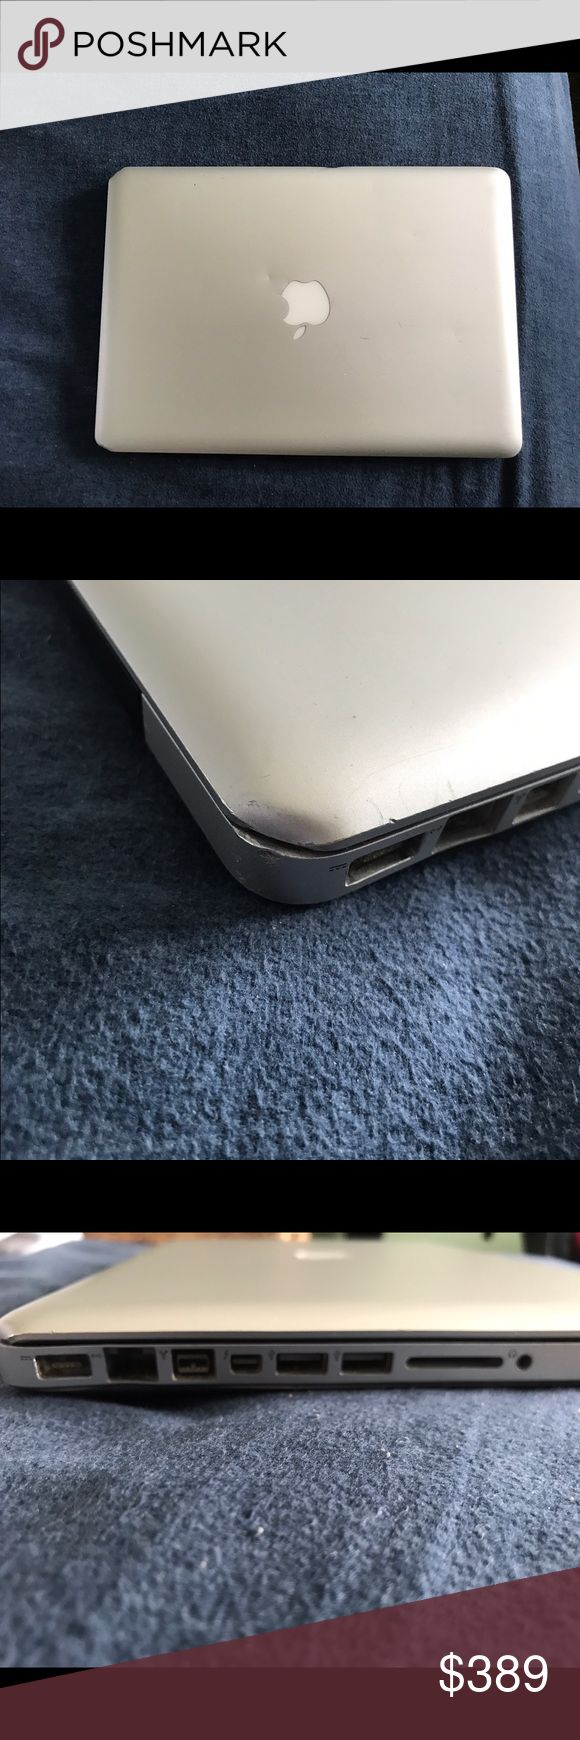 "2011 MacBook Pro Apple MacBook Pro A1278 13.3"" Laptop - MC724LL/A (February, 2011). Has a few dents and scratches, but works just fine. Apple Accessories Laptop Cases"